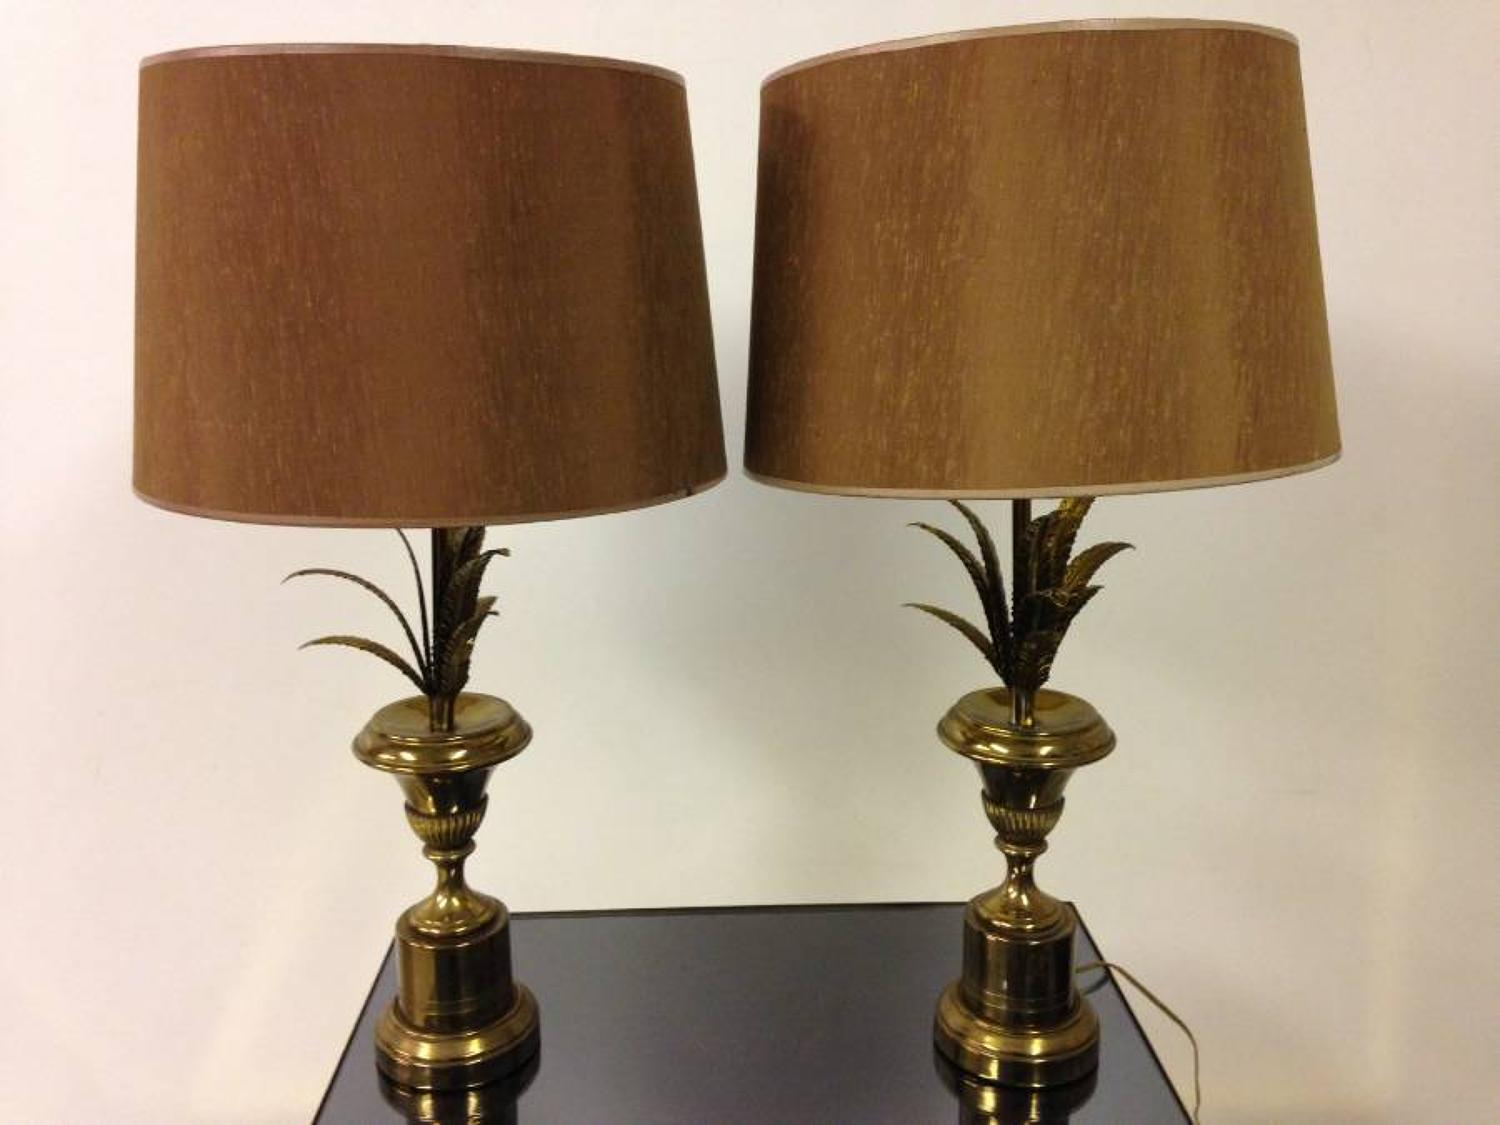 A pair of brass pineapple frond lamps